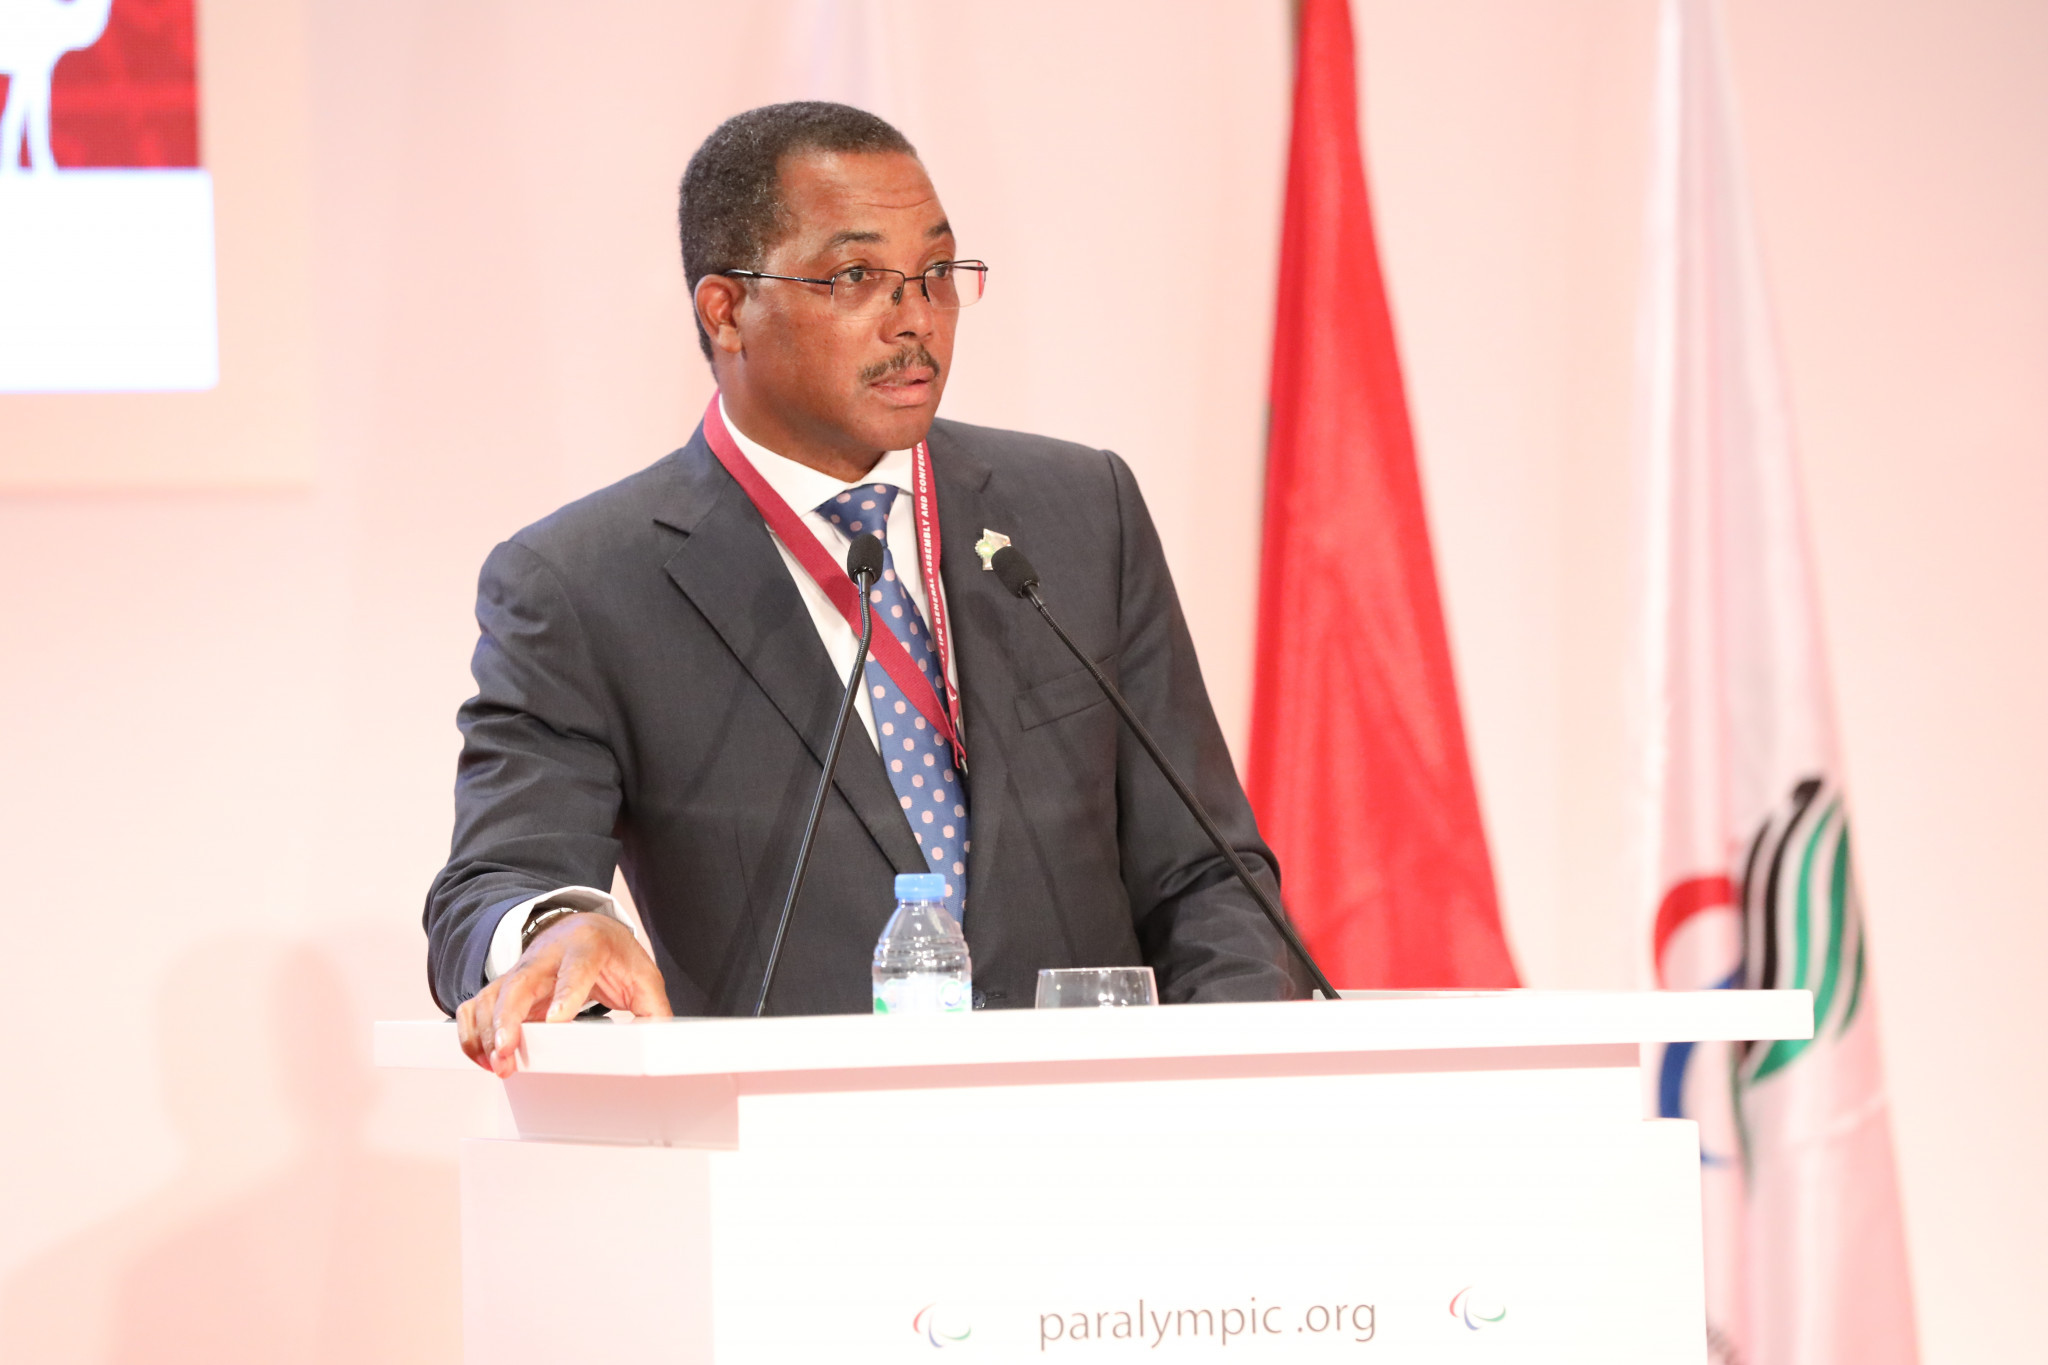 Pinto bemoans lack of Government support for African nations during IPC Governing Board pitch